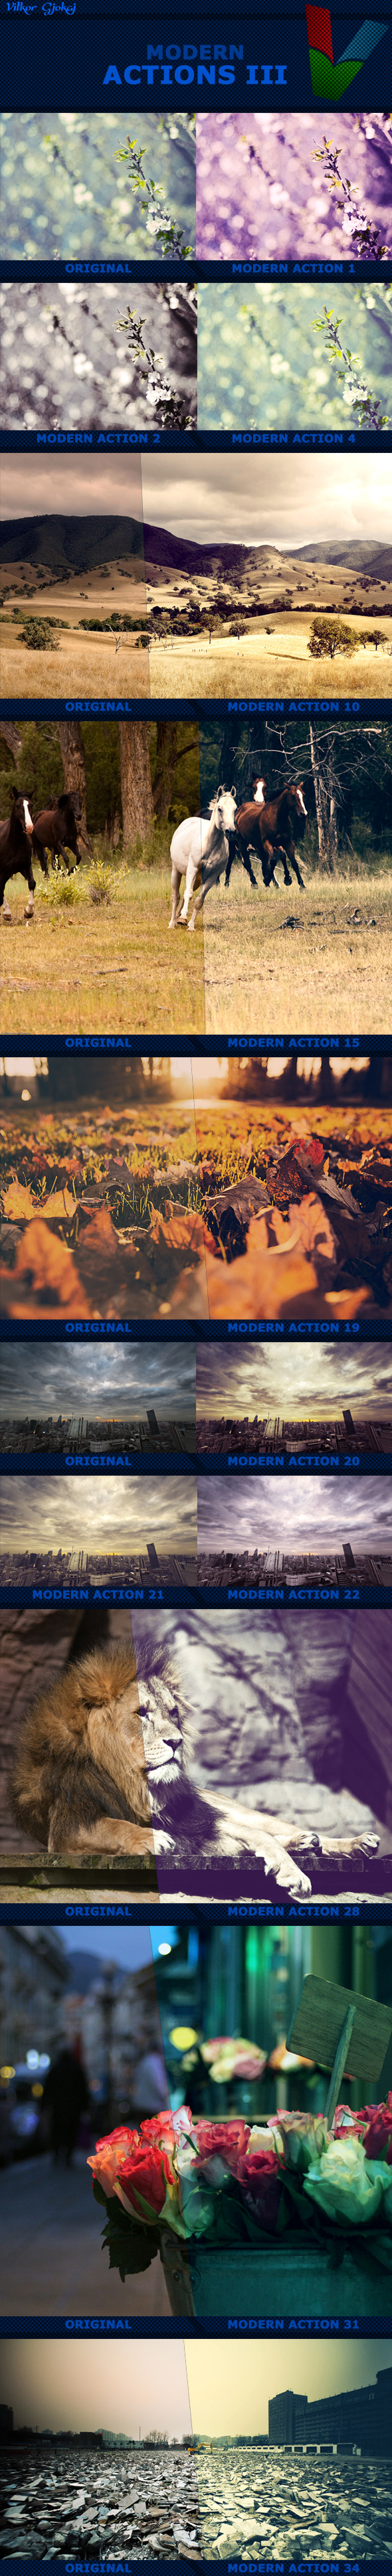 GraphicRiver Modern Photoshop Actions III 11804456